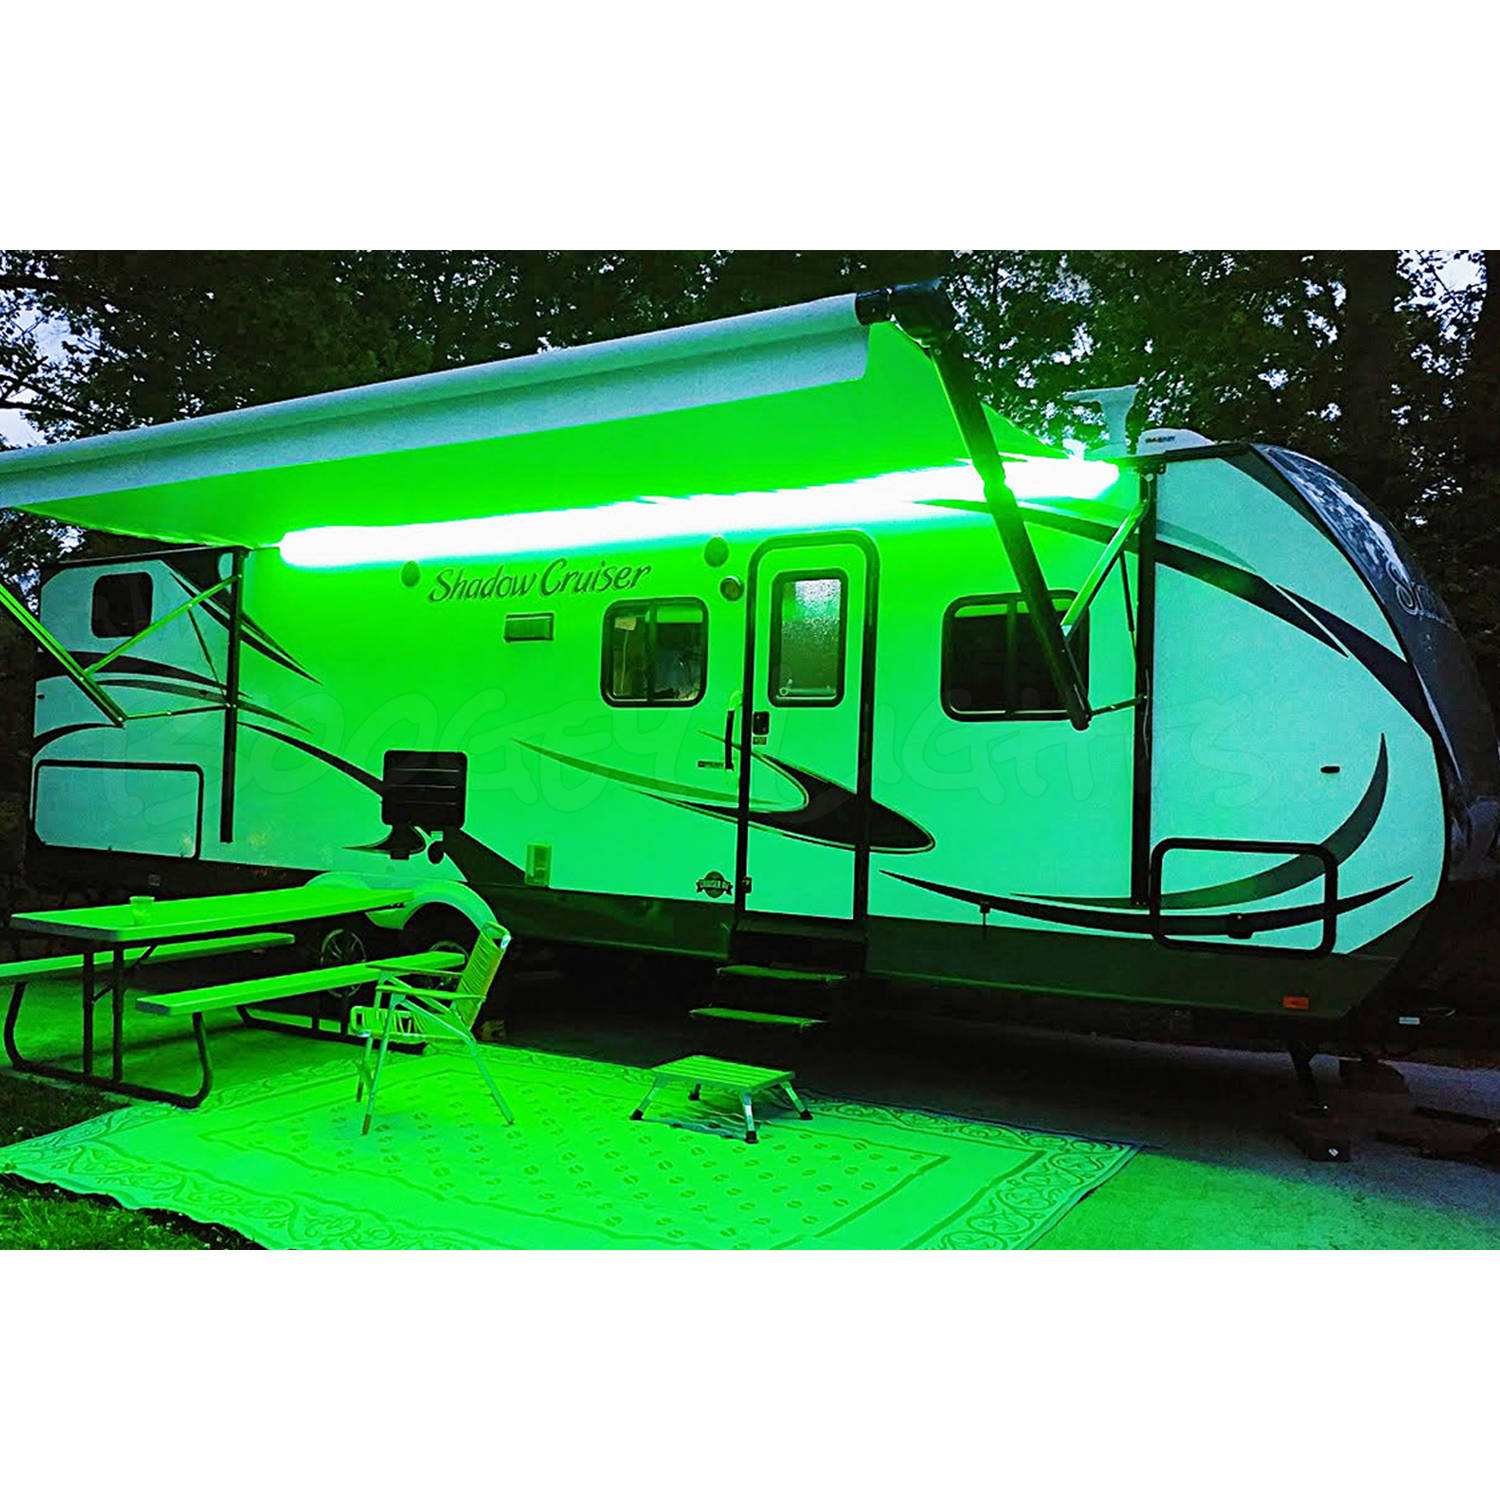 Boogey Lights Hi-Intensity LED Awning Light for RVs, Motorhomes and Campers